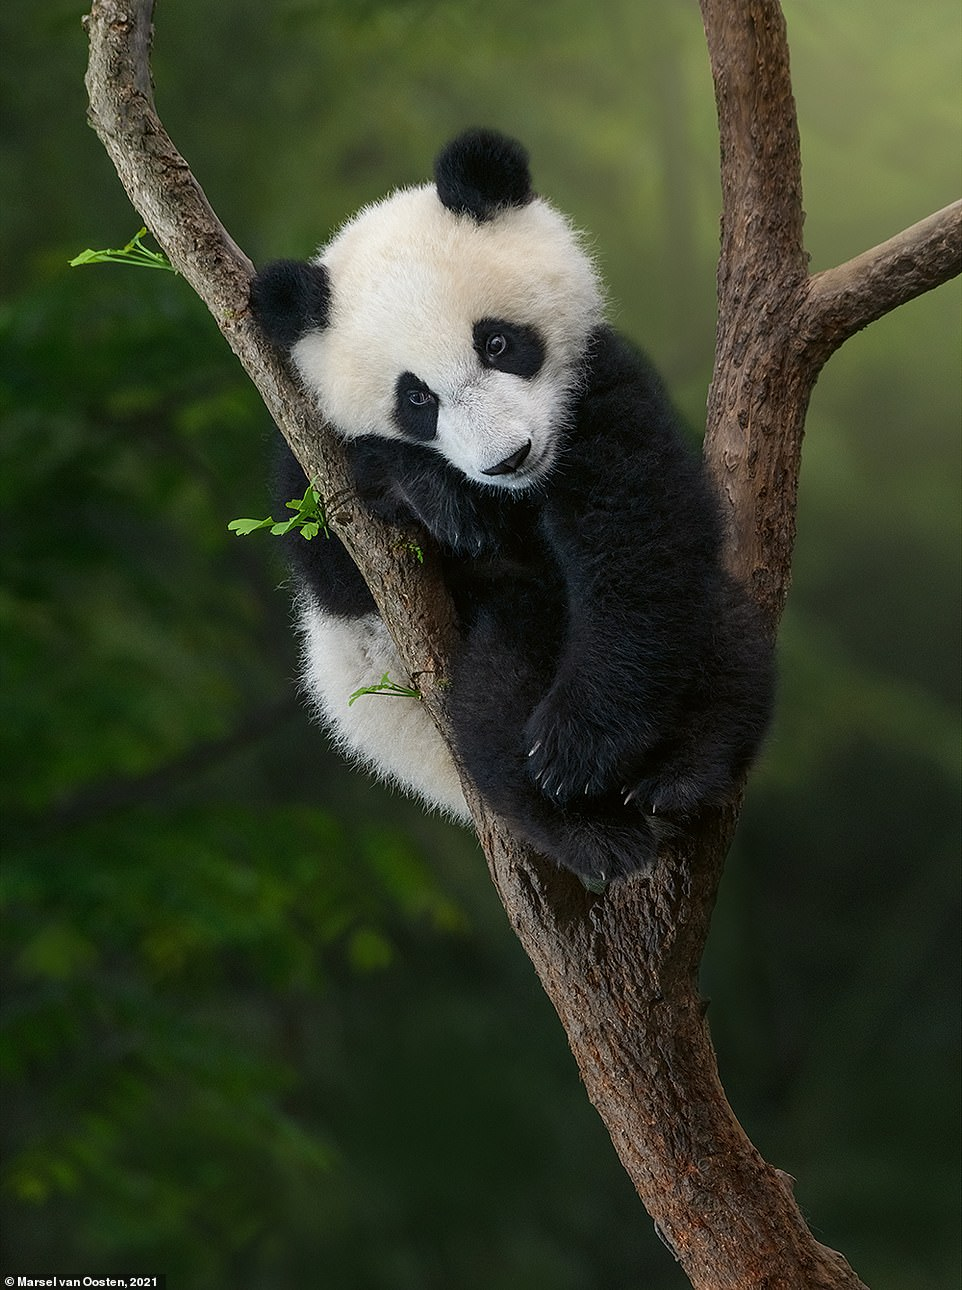 'When a panda cub is born, it is pink, blind, and toothless, weighing only 90 to 130g (3.25 to 4.5 oz), proportionally the smallest baby of any placental mammal,' Marsel explains in the book. He adds: 'One to two weeks after birth, the cub's skin turns grey where its hair will eventually become black. A month after birth, the colour pattern of the cub's fur is fully developed.' He took this cute snap in China